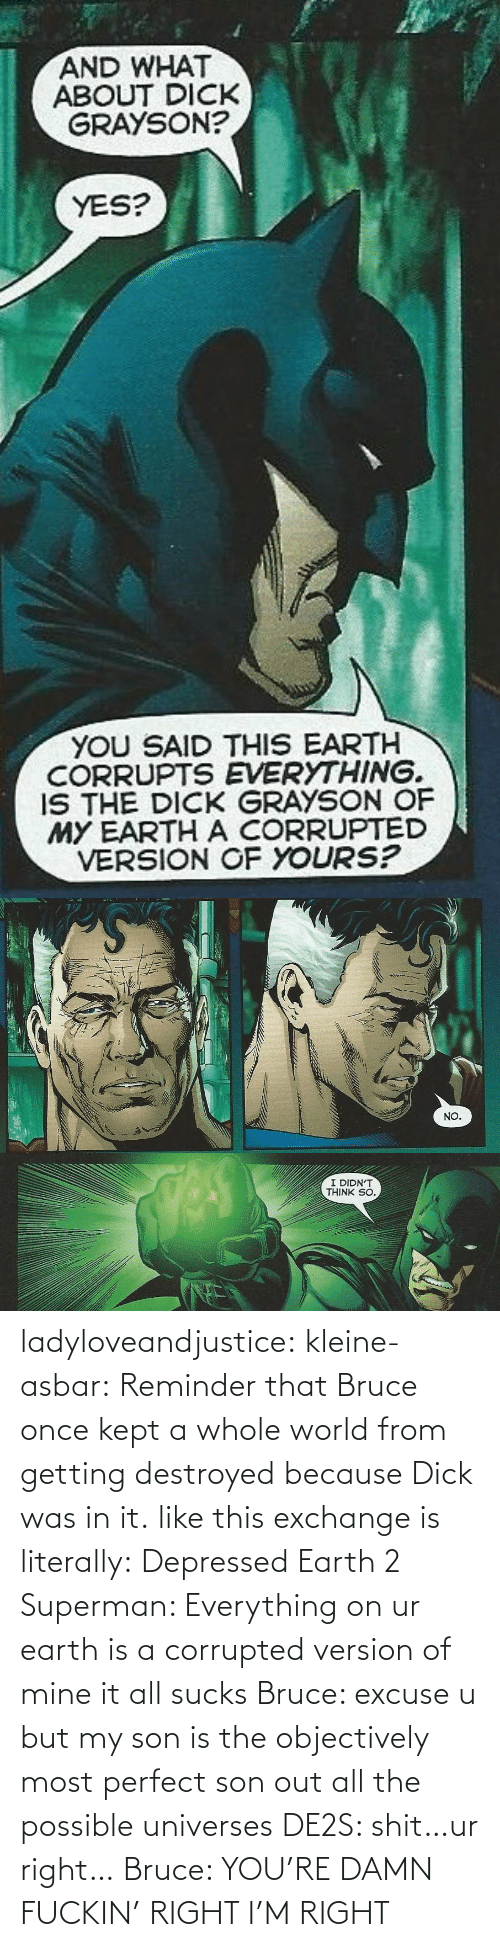 sucks: ladyloveandjustice:  kleine-asbar: Reminder that Bruce once kept a whole world from getting destroyed because Dick was in it. like this exchange is literally: Depressed Earth 2 Superman: Everything on ur earth is a corrupted version of mine it all sucks Bruce: excuse u but my son is the objectively most perfect son out all the possible universes DE2S: shit…ur right… Bruce: YOU'RE DAMN FUCKIN' RIGHT I'M RIGHT